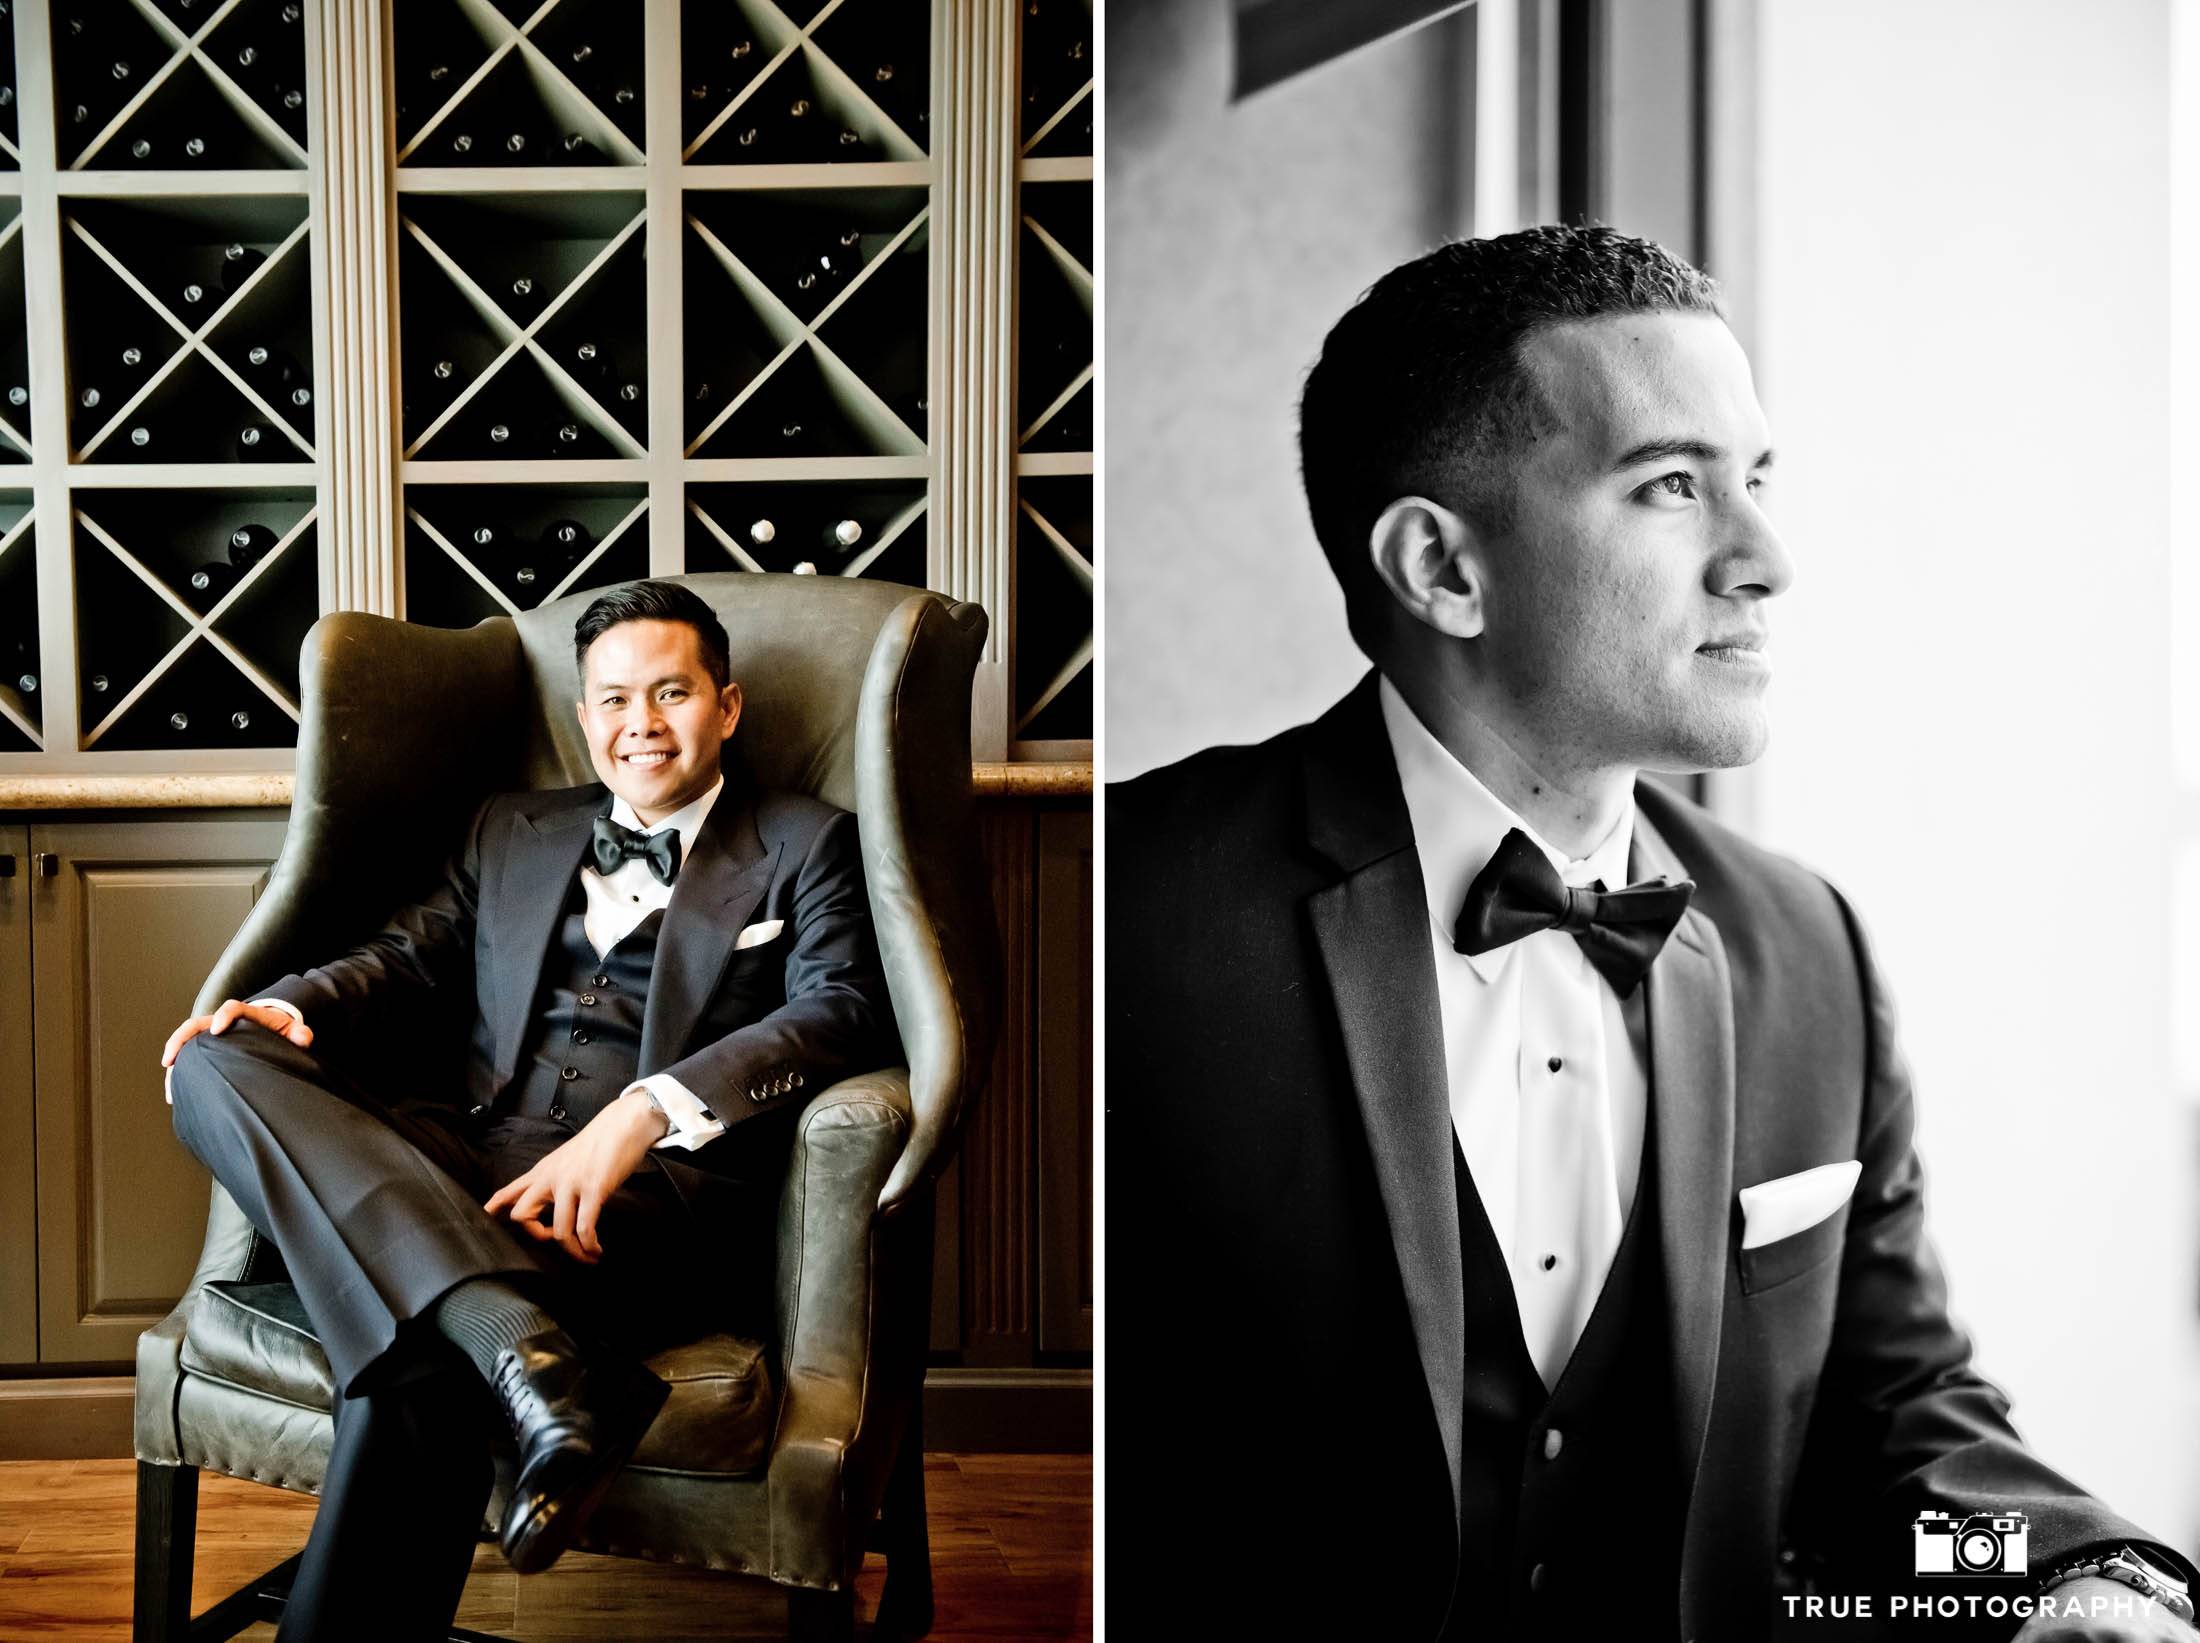 Modern groom before wedding ceremony